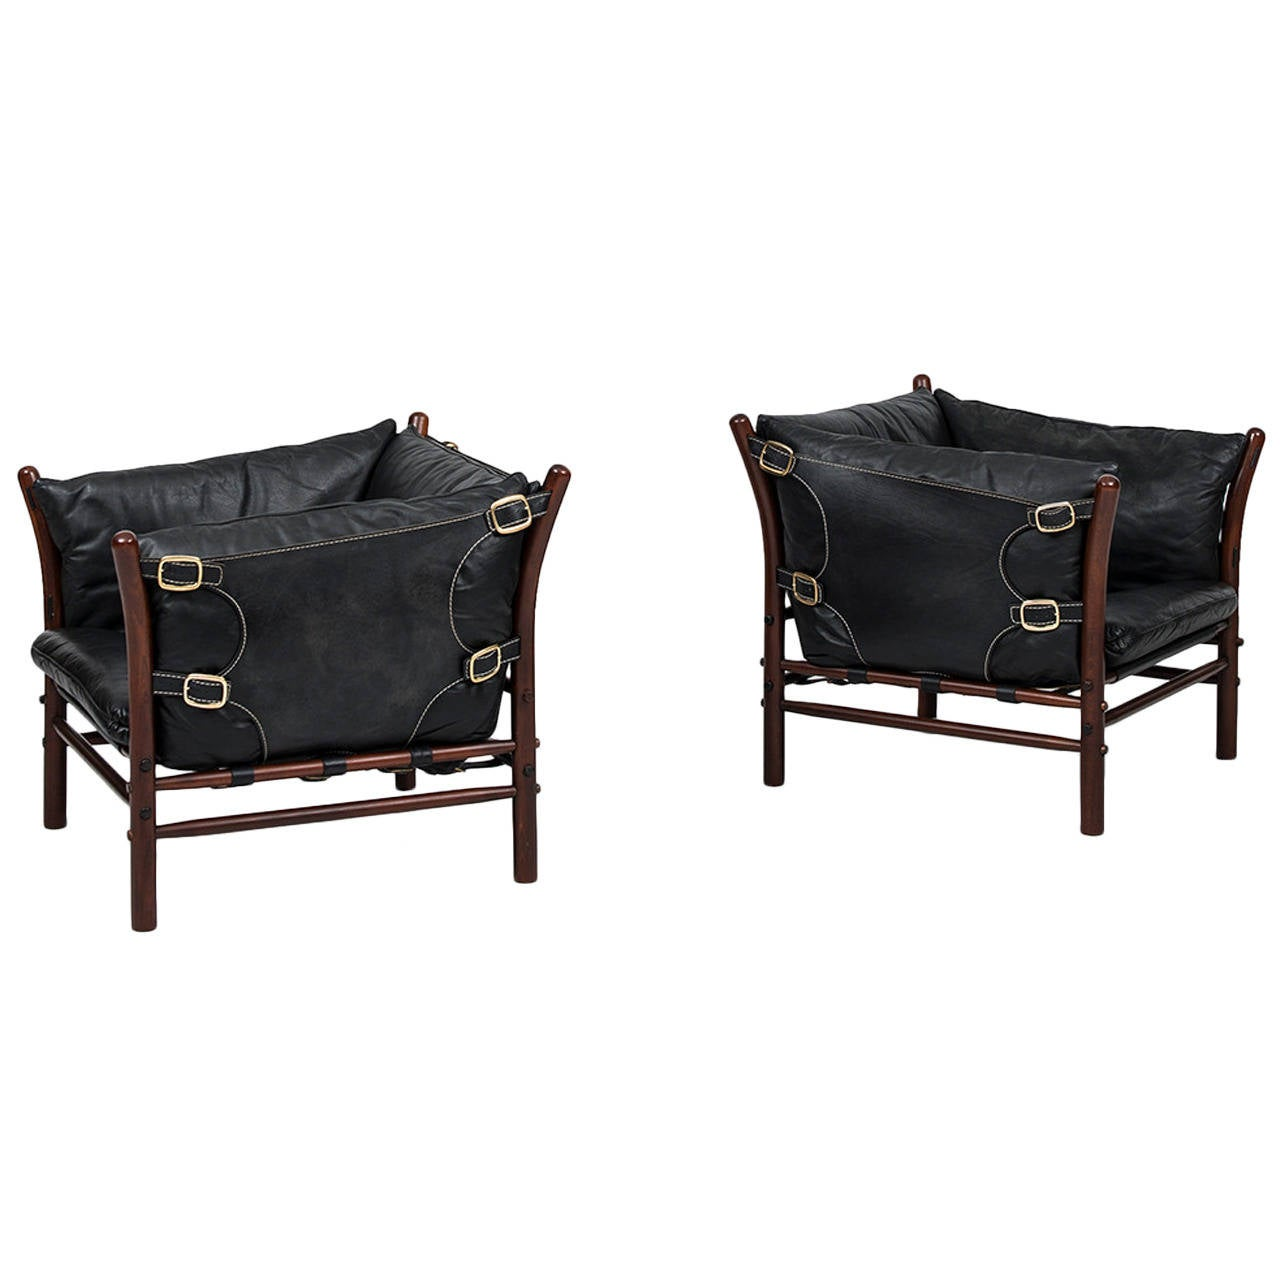 arne norell ilona easy chairs in black leather by norell ab in sweden